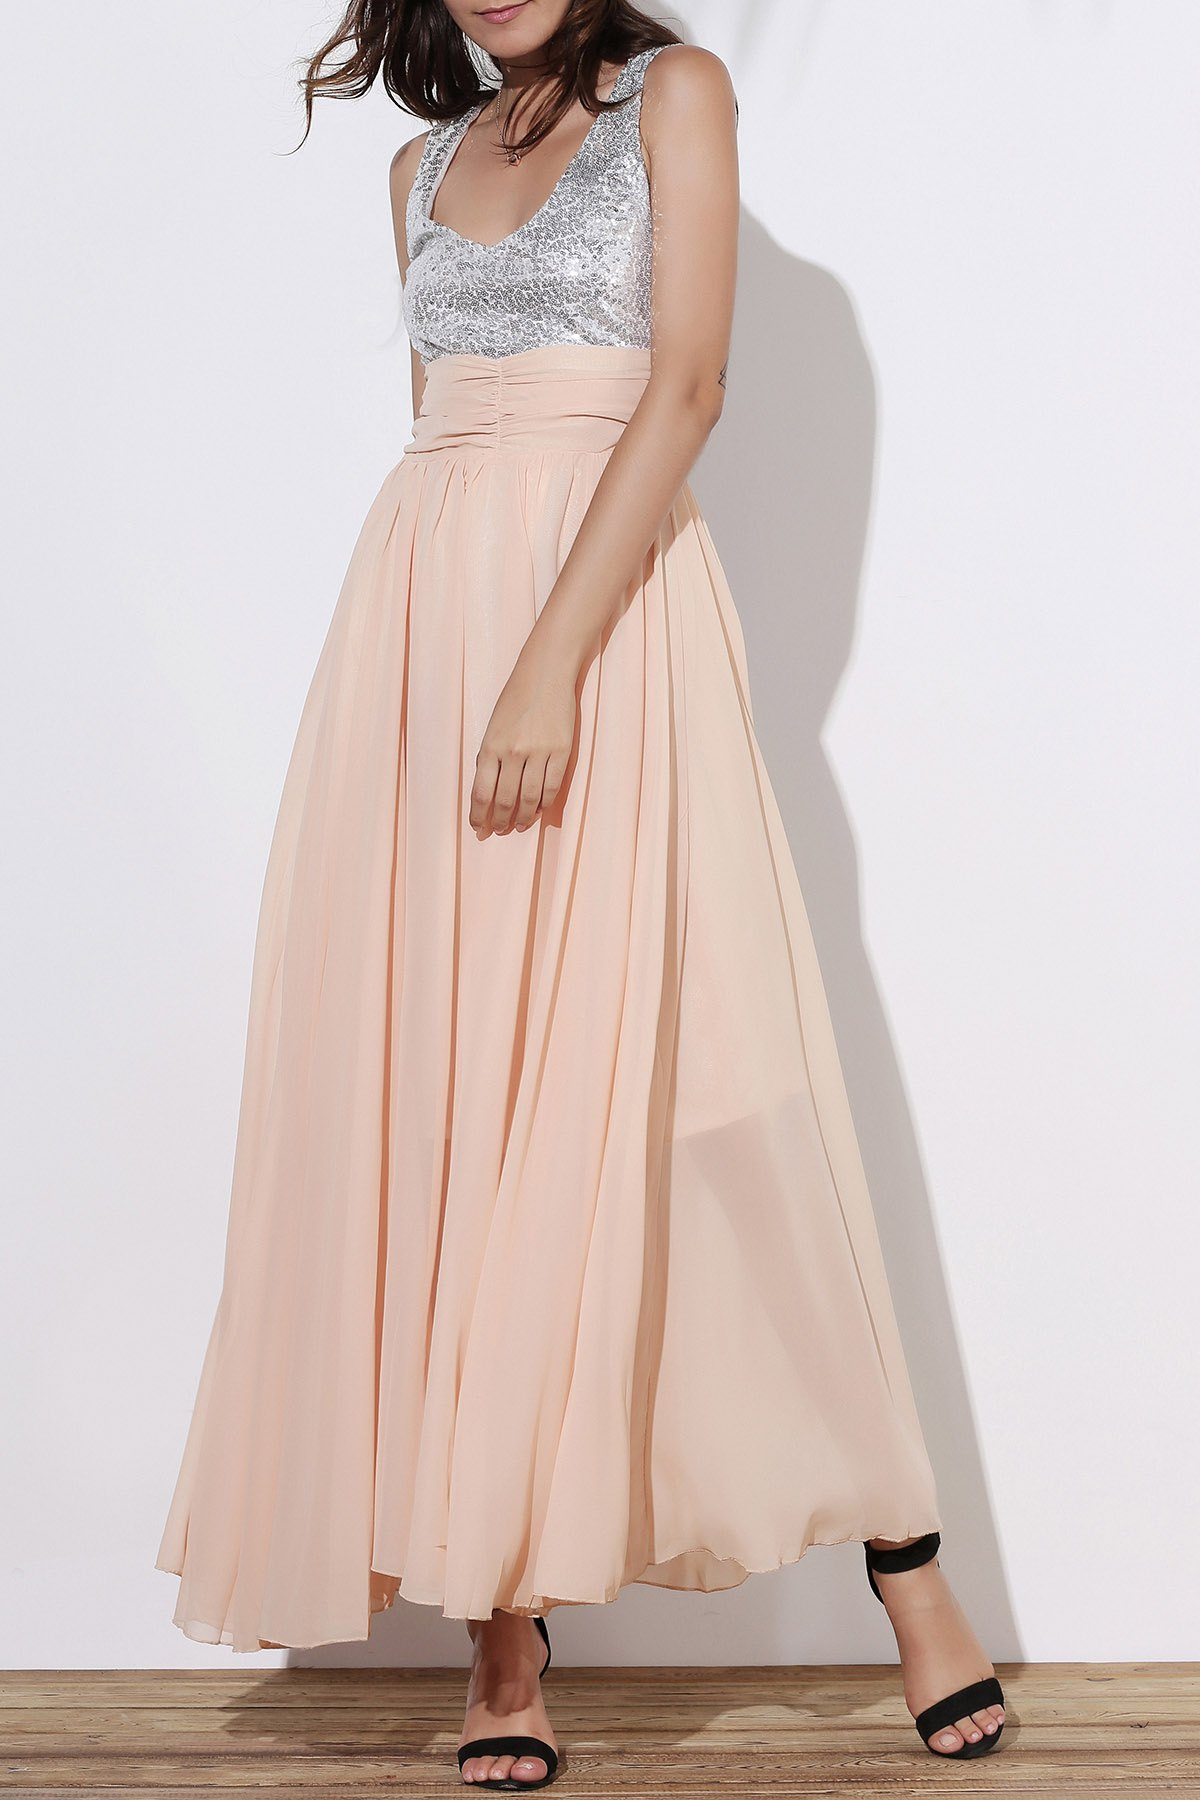 Hot Sequin Empire Waist Chiffon Long Prom Evening Dress